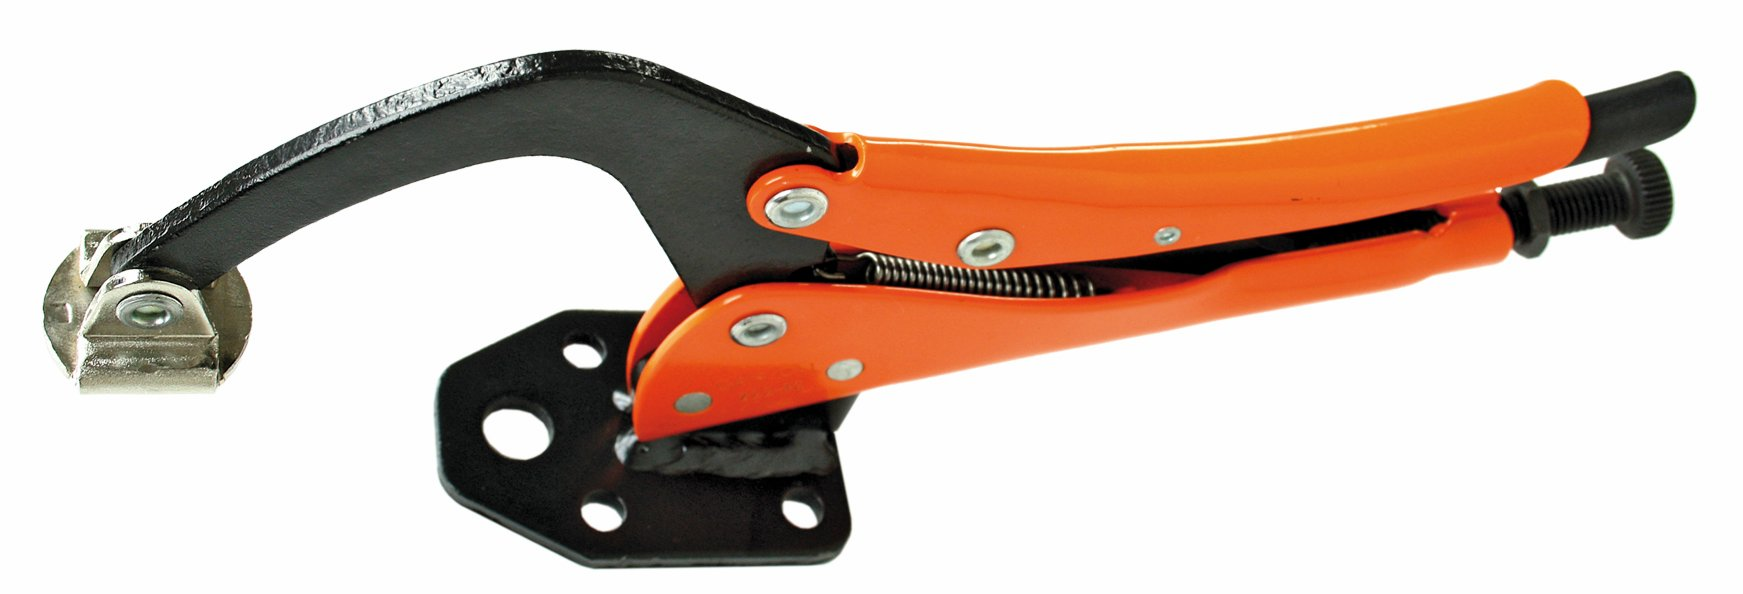 Svejsetang - bordmontering C-clamp. Grip-On